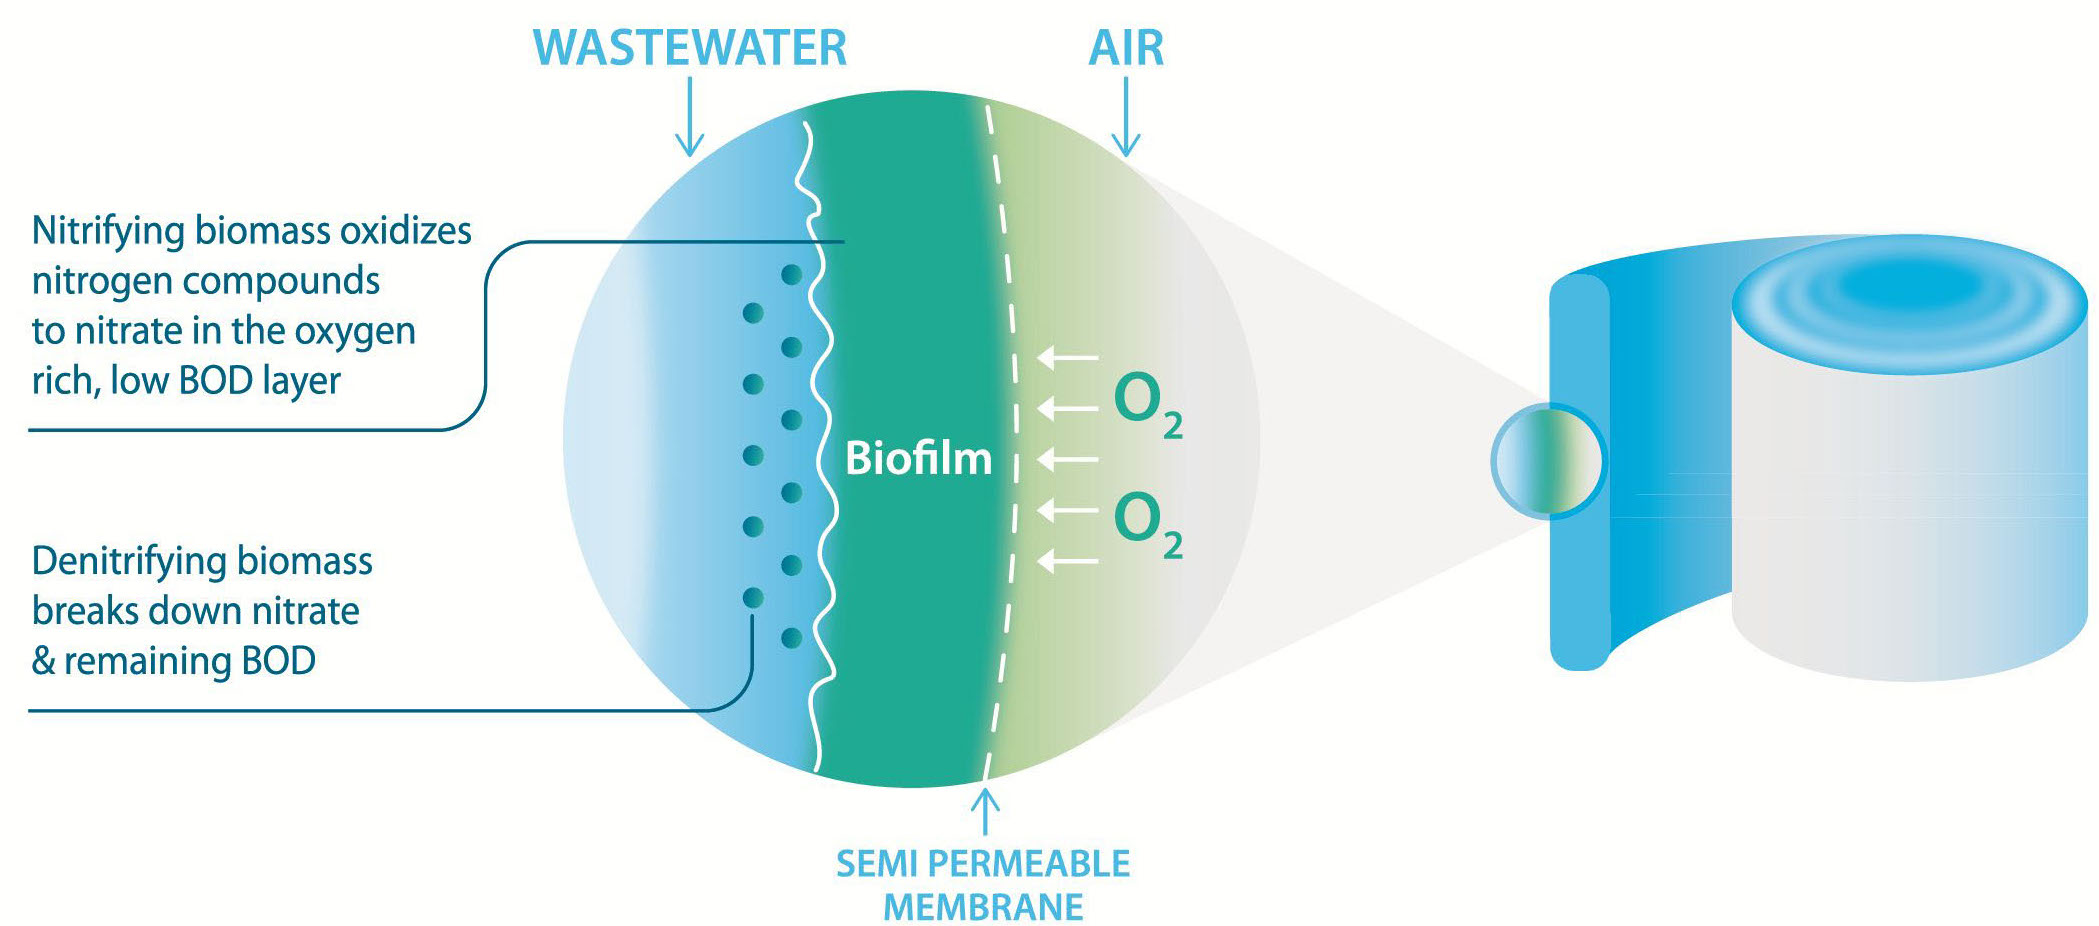 Simultaneous Nitrification-Denitrification